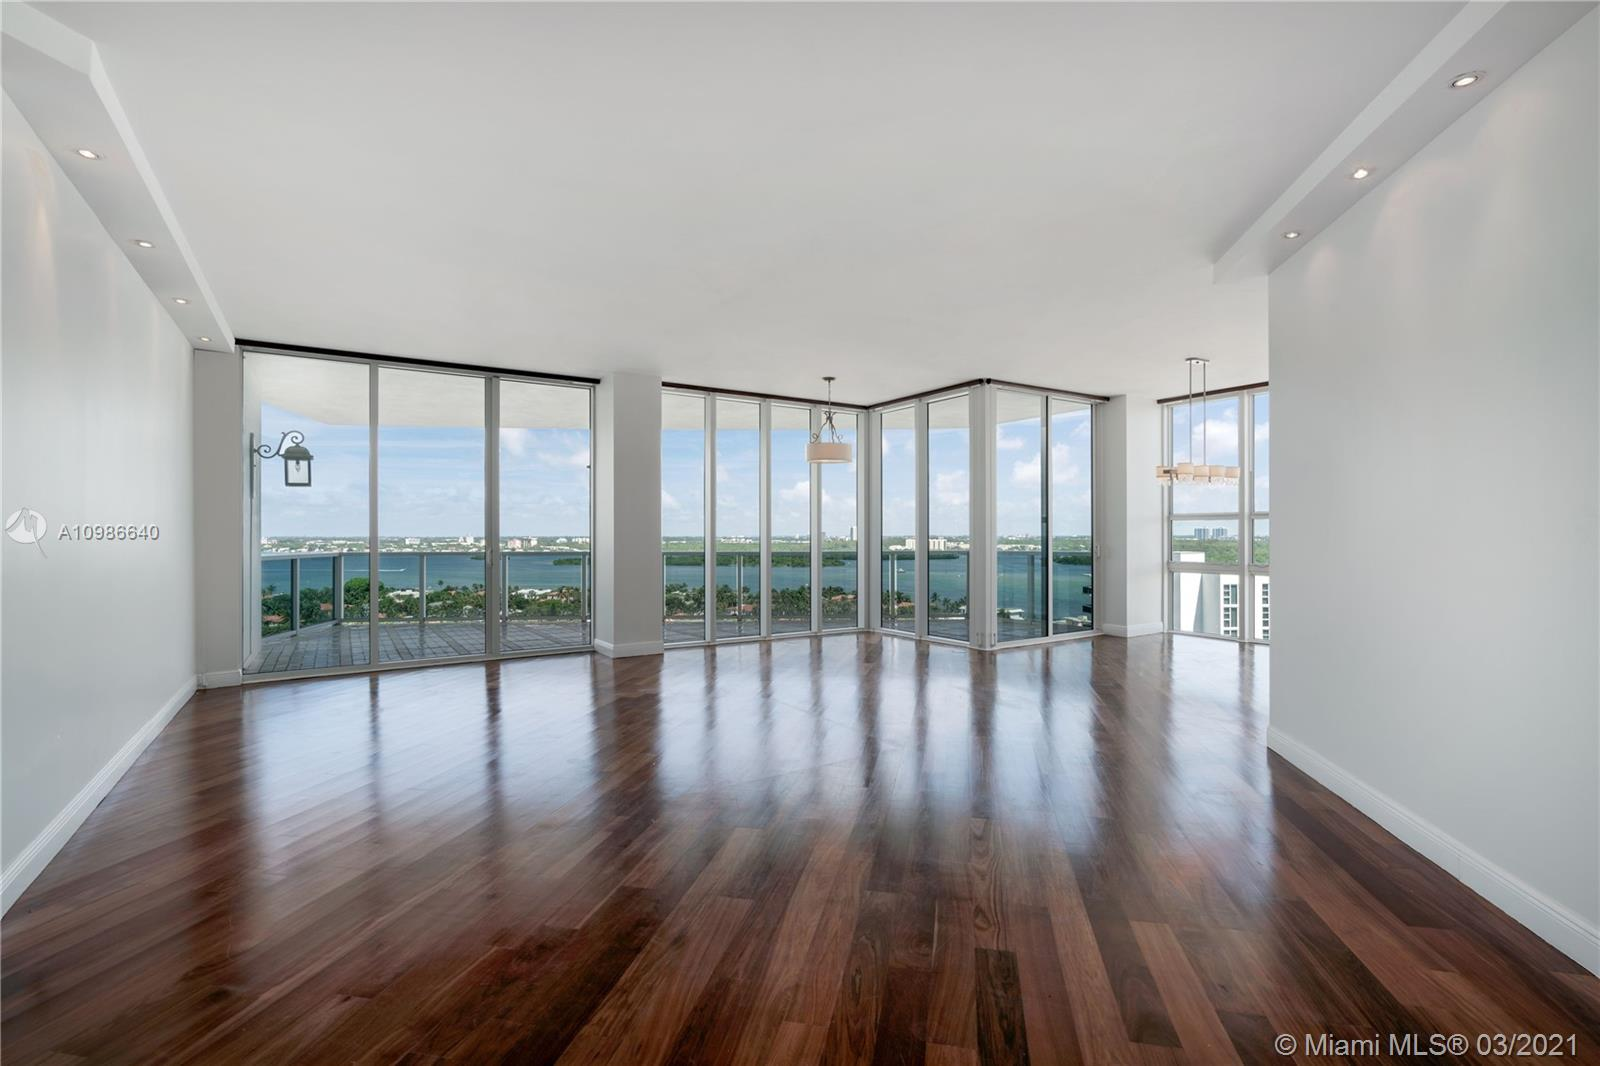 PROPERTY IS AVAILABLE FOR OCCUPANCY ON AUGUST 1ST 2021 HARBOUR-A SHIMMERING LANDMARK OF ELEGANCE RISING ABOVE THE WHITE SANDS OF FLORIDA'S ULTIMATE DESTINATION. SPECTACULAR NORTHEAST CORNER UNIT WITH WRAP AROUND TERRACES. BREATHTAKING, UNOBSTRUCTED VIEWS OF THE ATLANTIC OCEAN, INTRACOASTAL WATERWAY AND CITY. THIS RESIDENCE OFFERS A PRIVATE ELEVATOR FOYER. 2,918 SQ FT OF PURE LUXURY. 4 GENEROUSLY PROPORTIONED BEDROOMS  ROOM, 4 FULL BATHROOMS . MASTERFULLY DESIGNED WITH GREAT ATTENTION TO QUALITY, DETAIL, AND LUXURIES. ELEGANT BUILT-IN CLOSETS, CUSTOM CABINETRY. FINEST WOOD FLOORS AND FIXTURES. LAUNDRY ROOM WITH WASHER AND DRYER. UNFURNISHED. THE LUXURY BELLINI TOWER IS PERFECTLY COMPLEMENTED BY REFINED AMENITIES THAT SURROUND